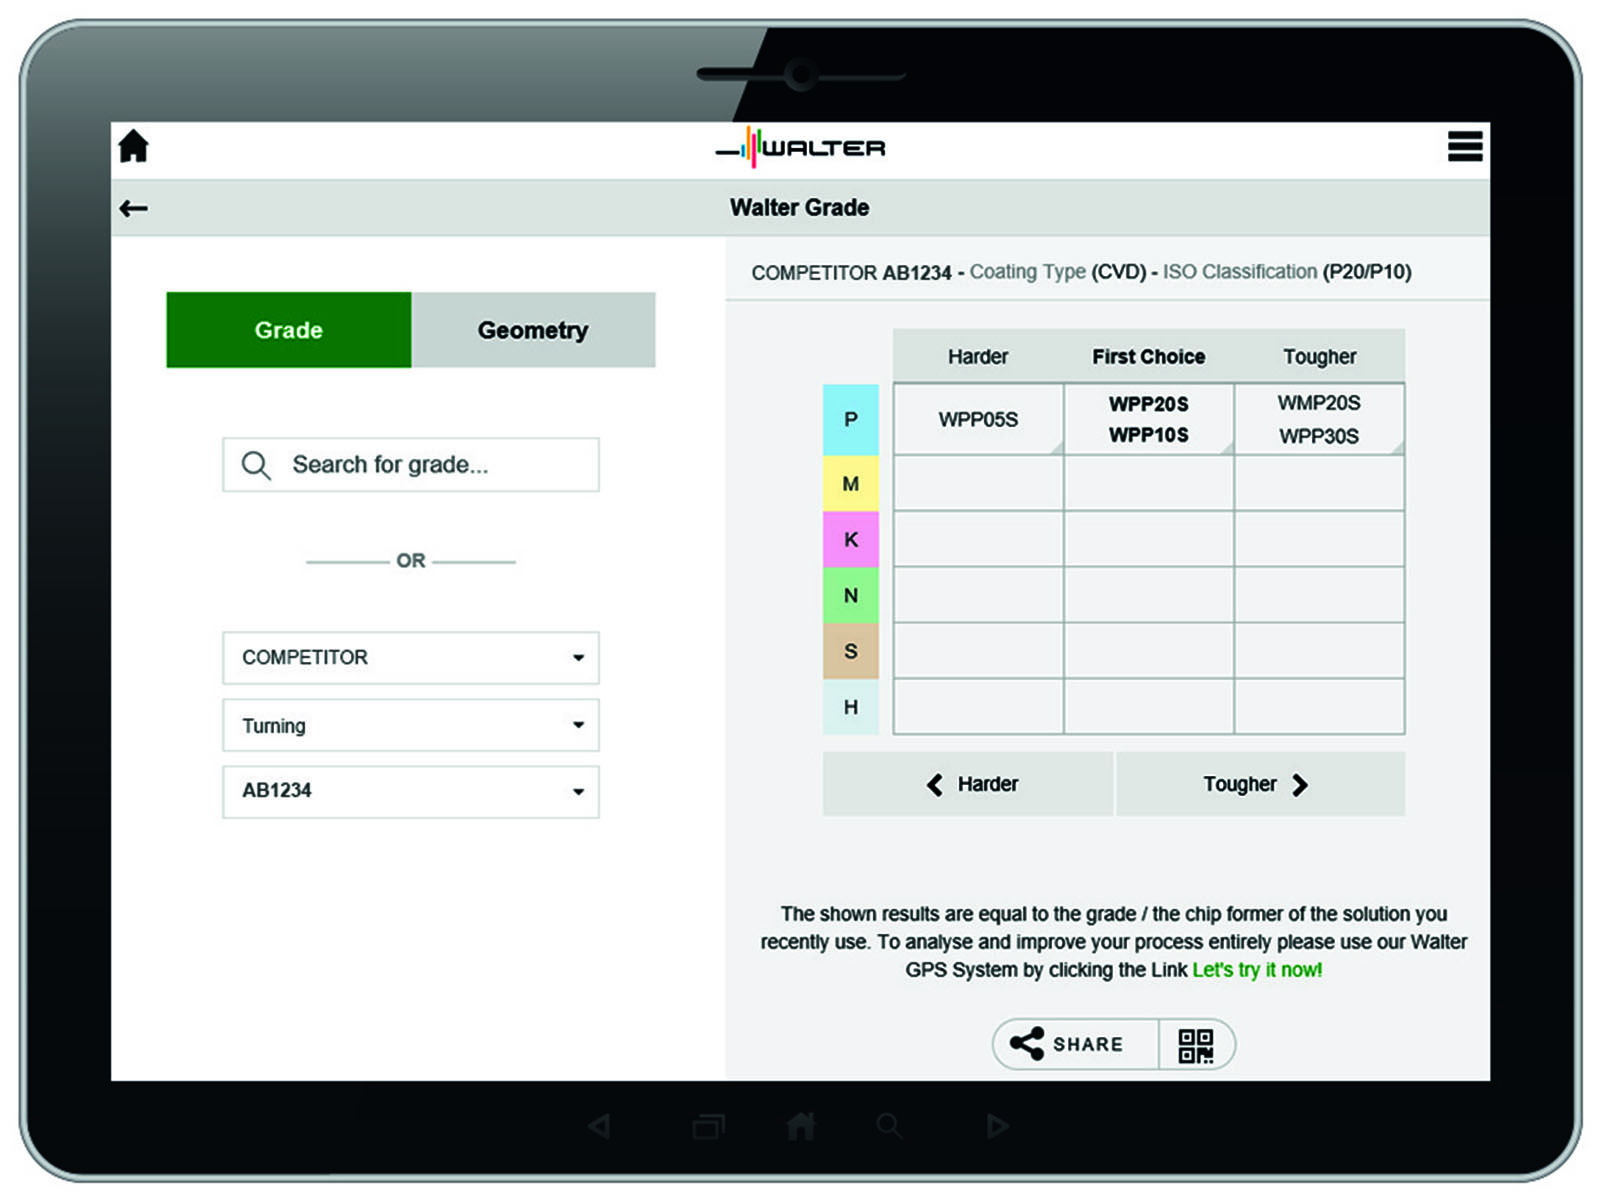 New Walter app helps optimizes indexable insert selection